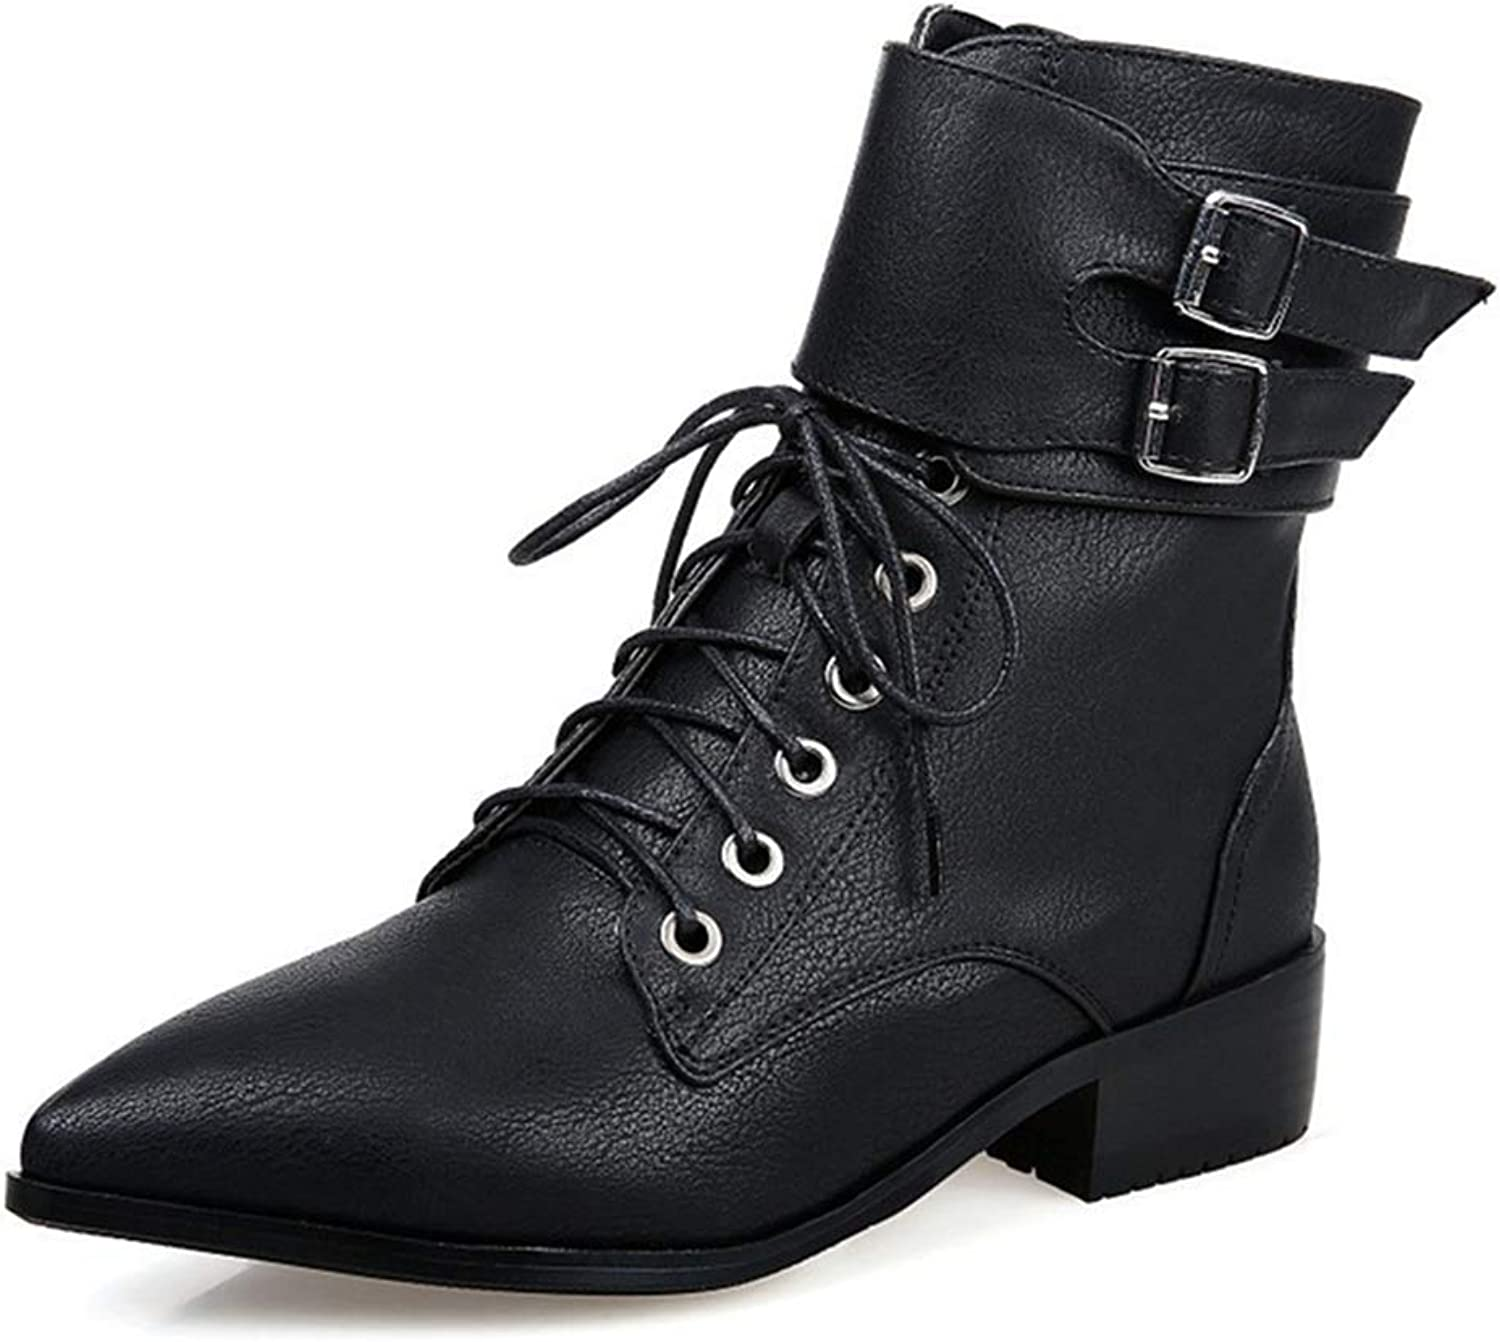 Beautiful - Fashion Women's Chelsea Buckle Ankle Boots Combat Pointed Toe Lace Up Zip Low Heel Western Riding Short Bootie